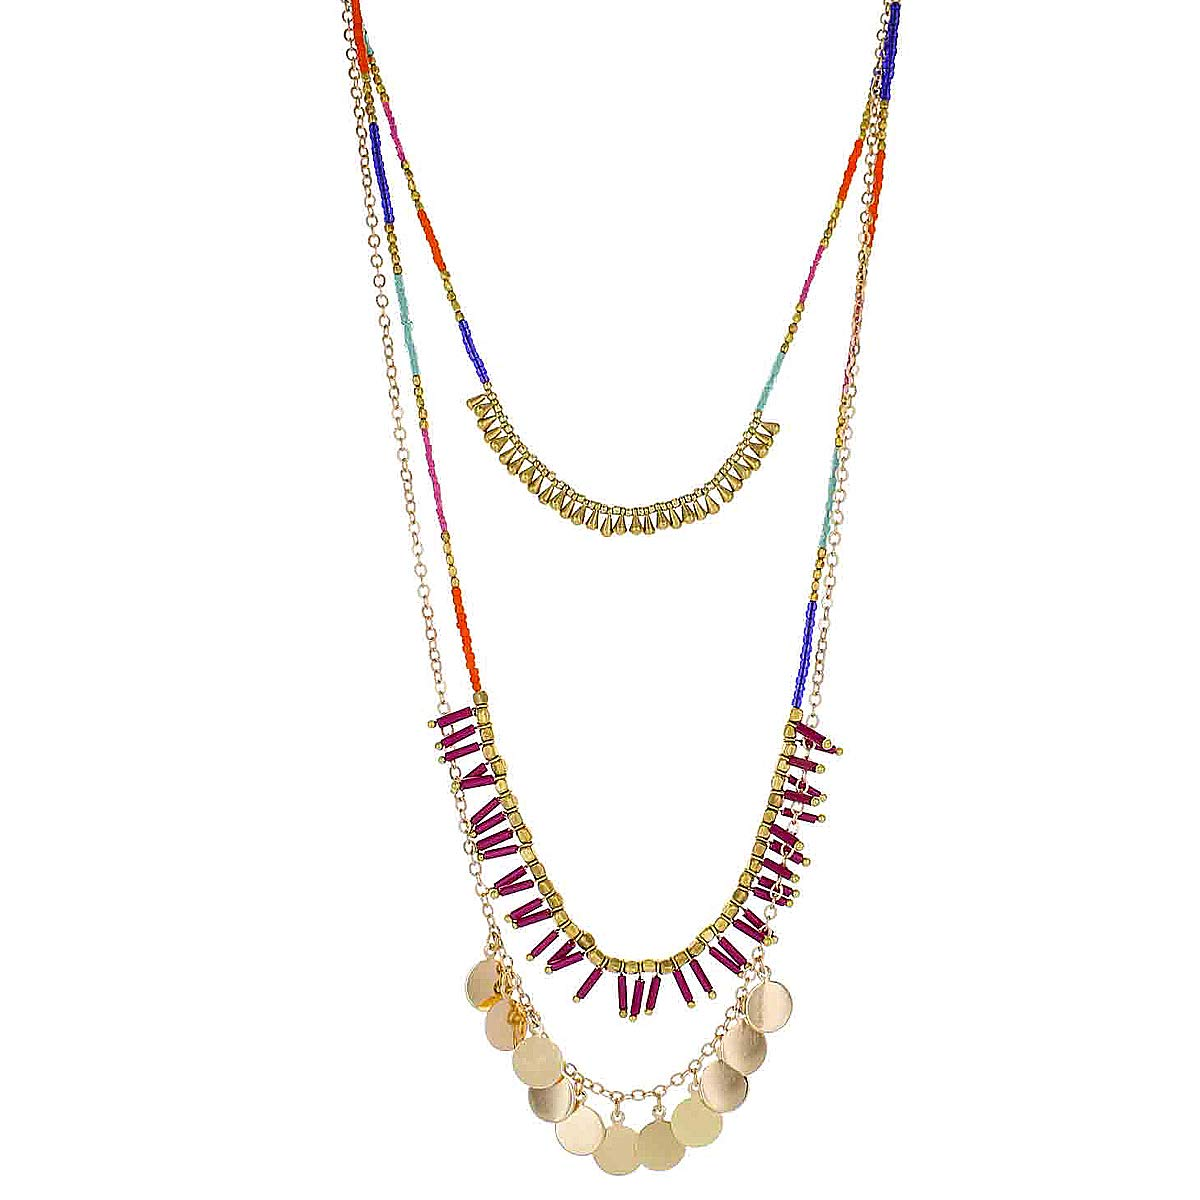 Panacea Womens Multi Strand Seed Bead Necklace With Stick Charm, Multi, One Size